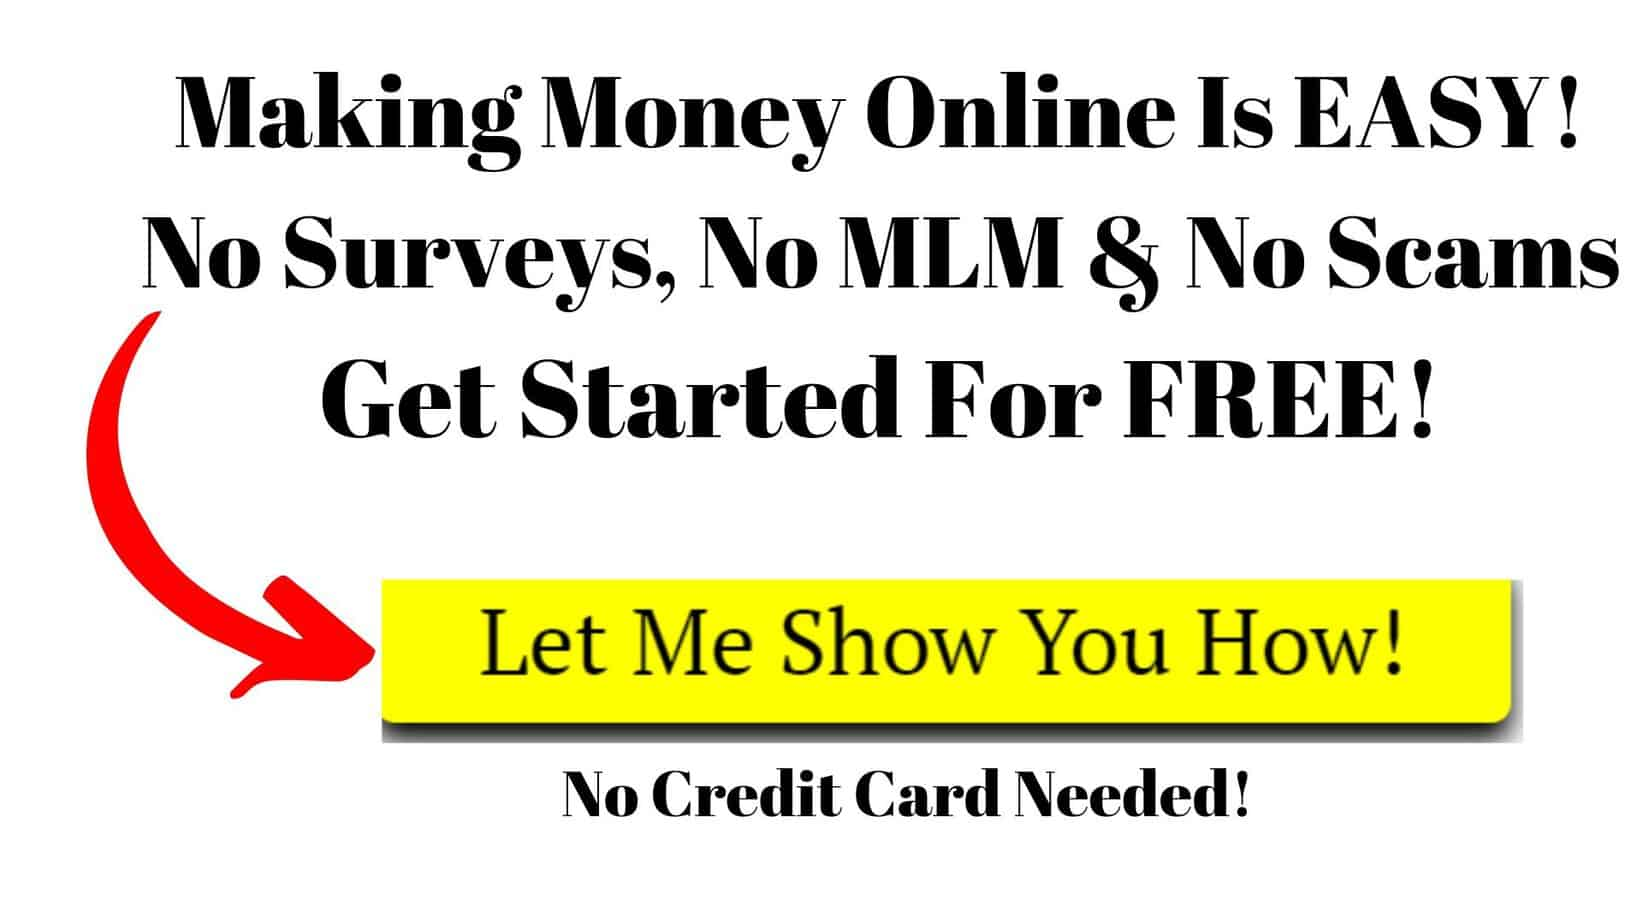 Making Money Online Is Easy CTA New